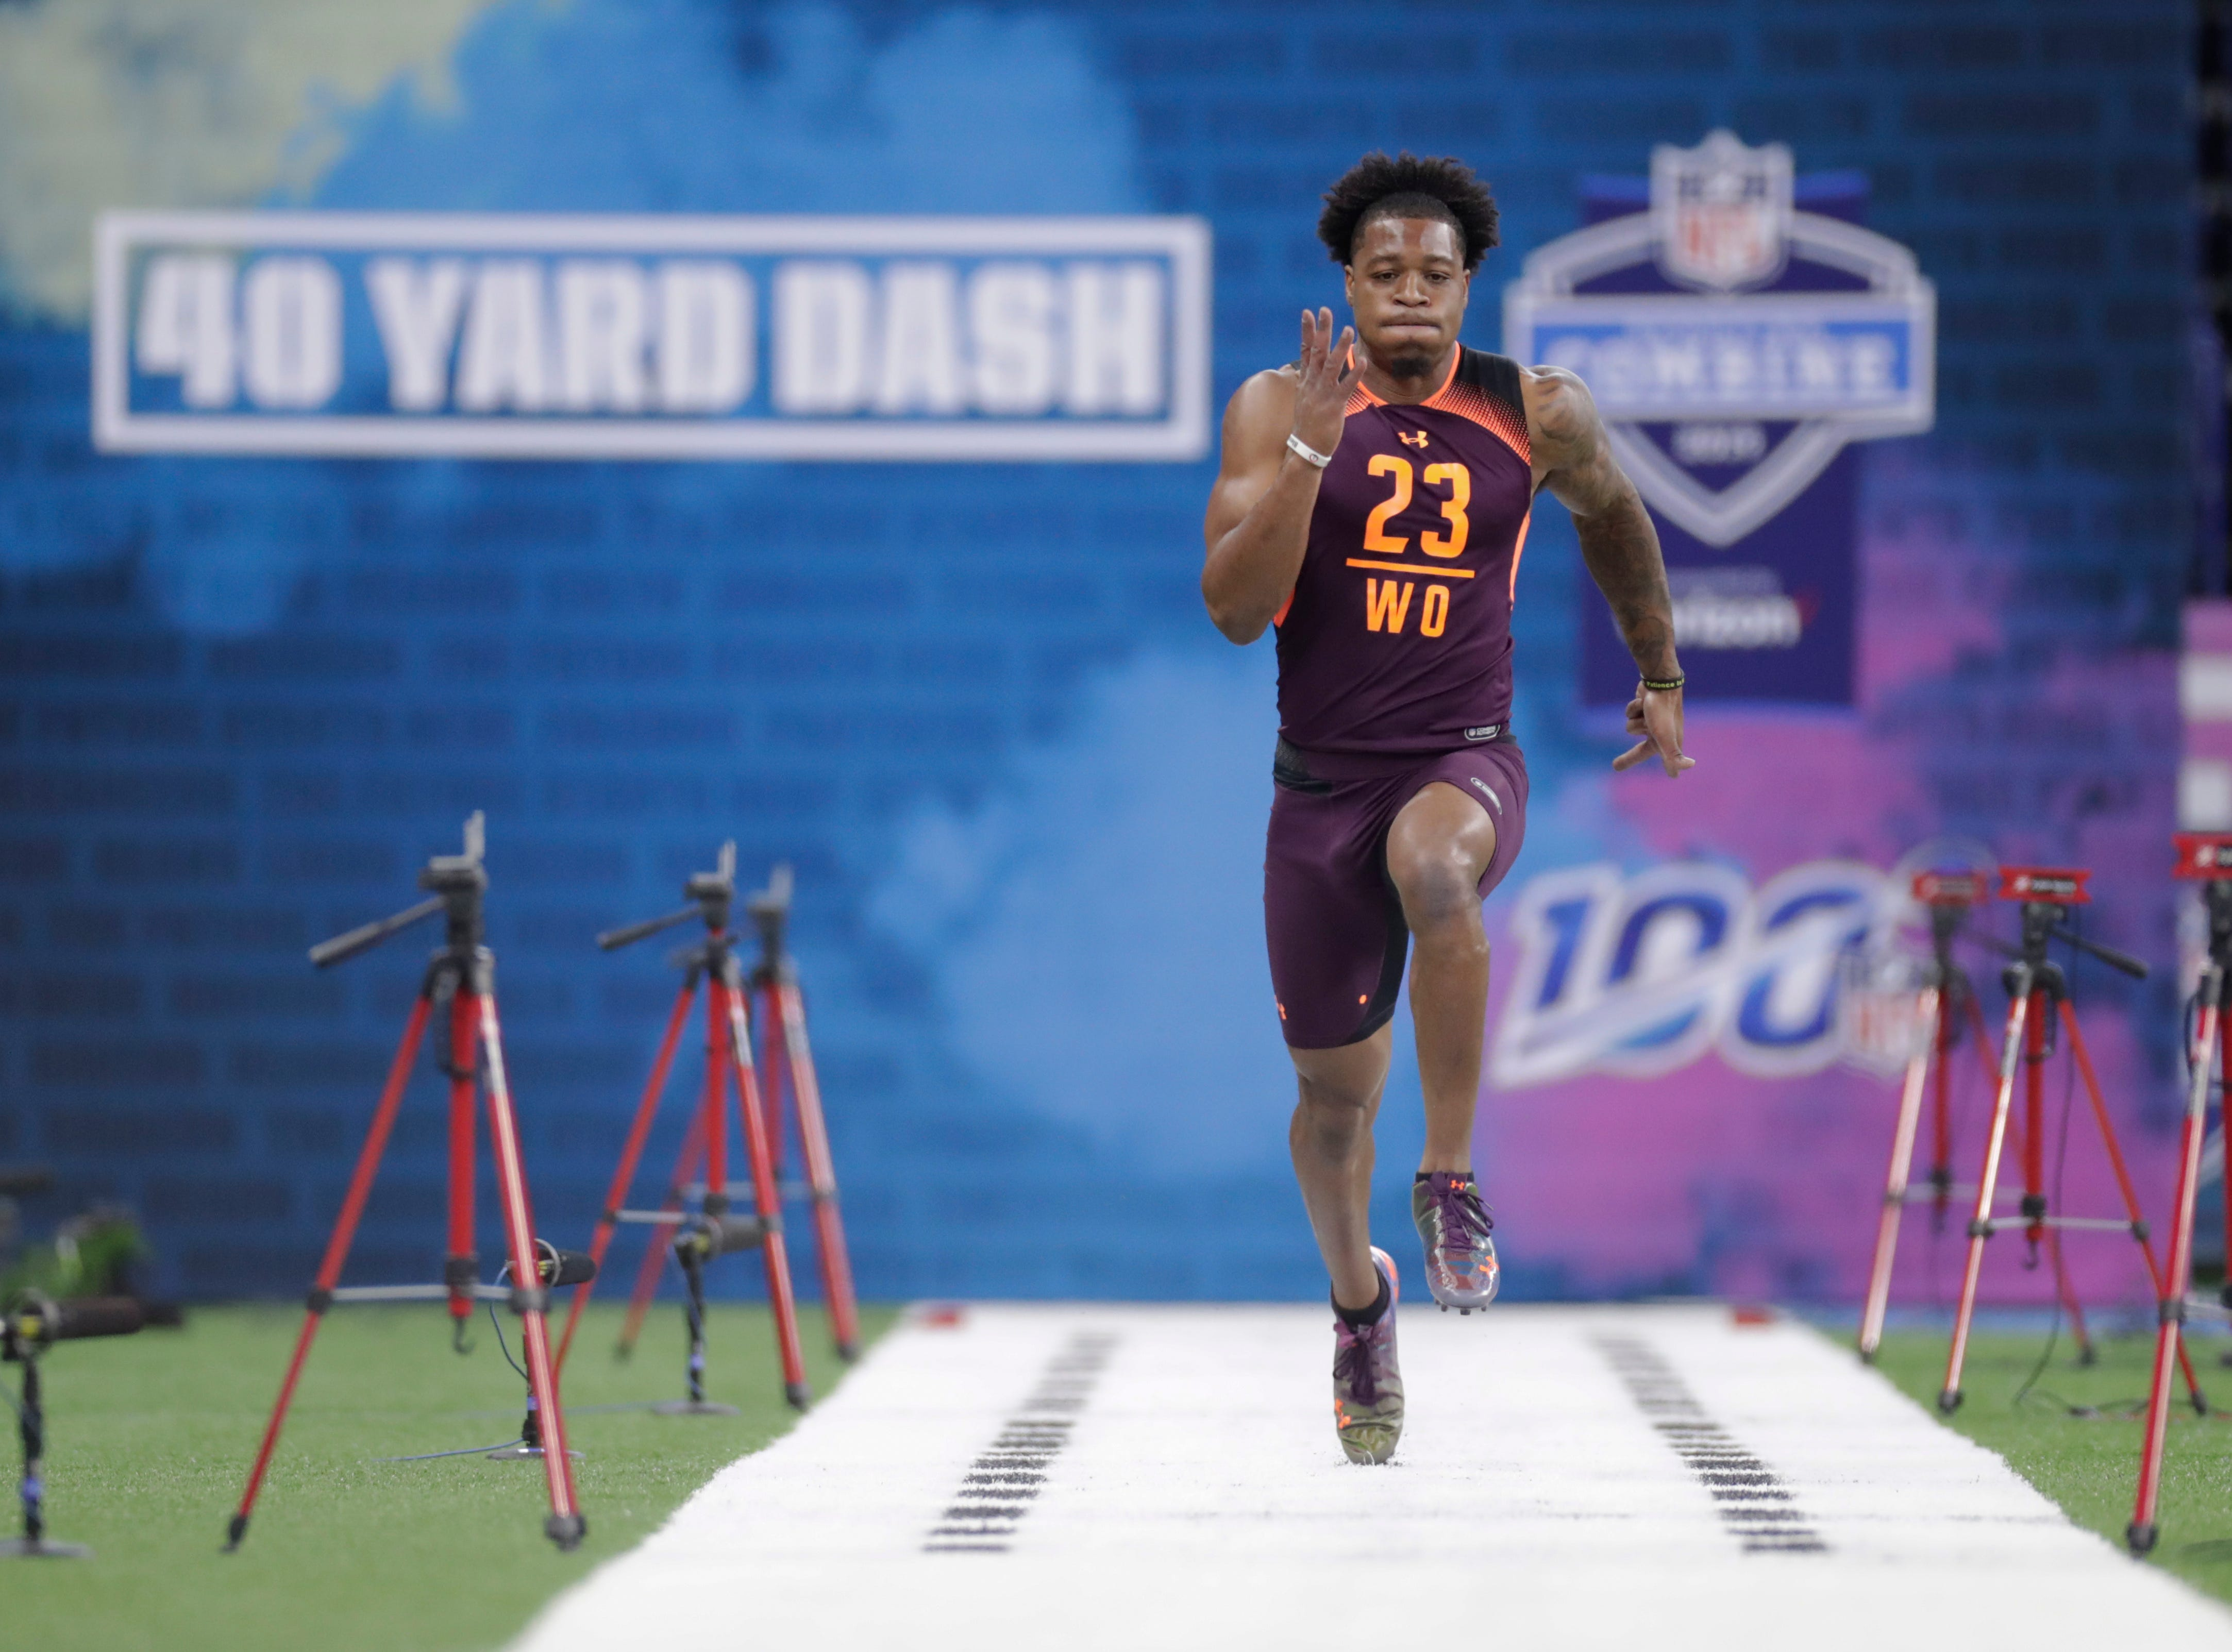 Arizona State wide receiver N'Keal Harry runs the 40-yard dash at the NFL football scouting combine in Indianapolis, Saturday, March 2, 2019. (AP Photo/Michael Conroy)